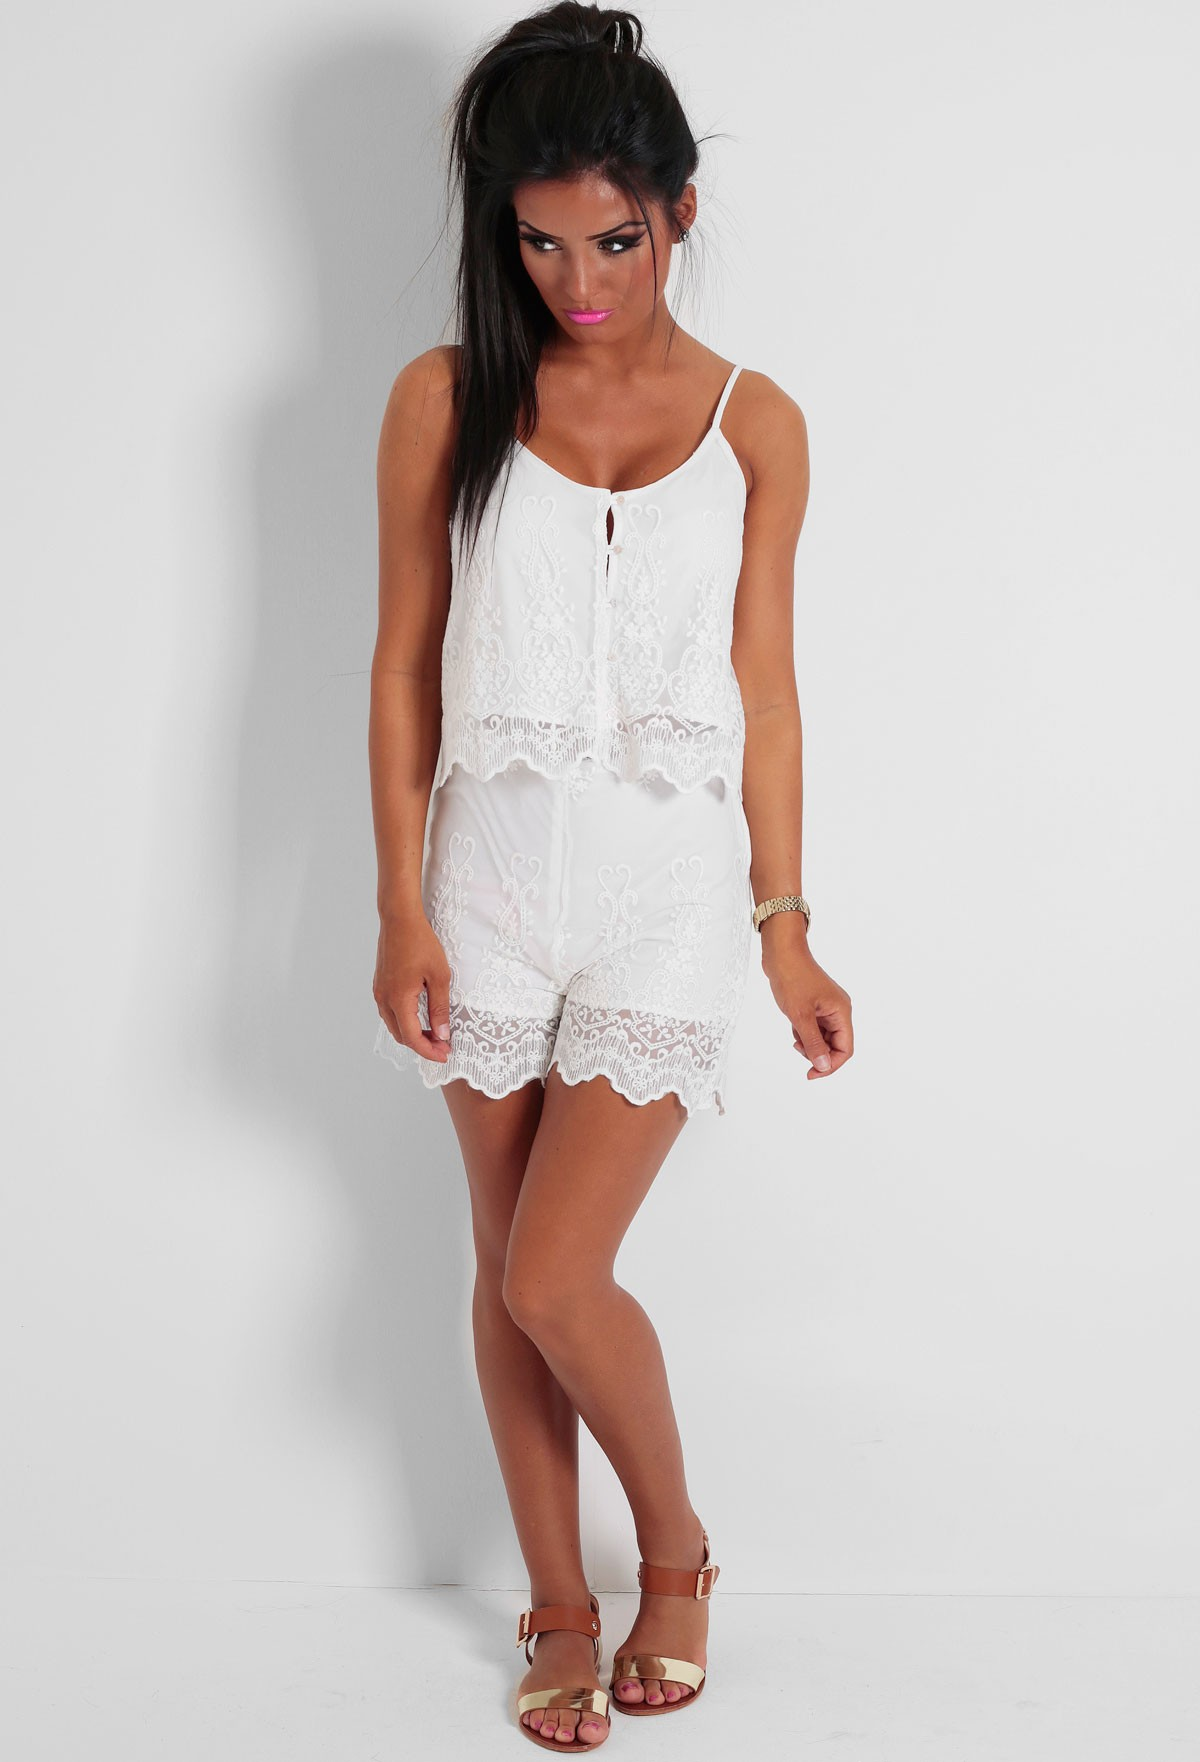 Cadena White Lace Overlay Two Piece Set | Pink Boutique